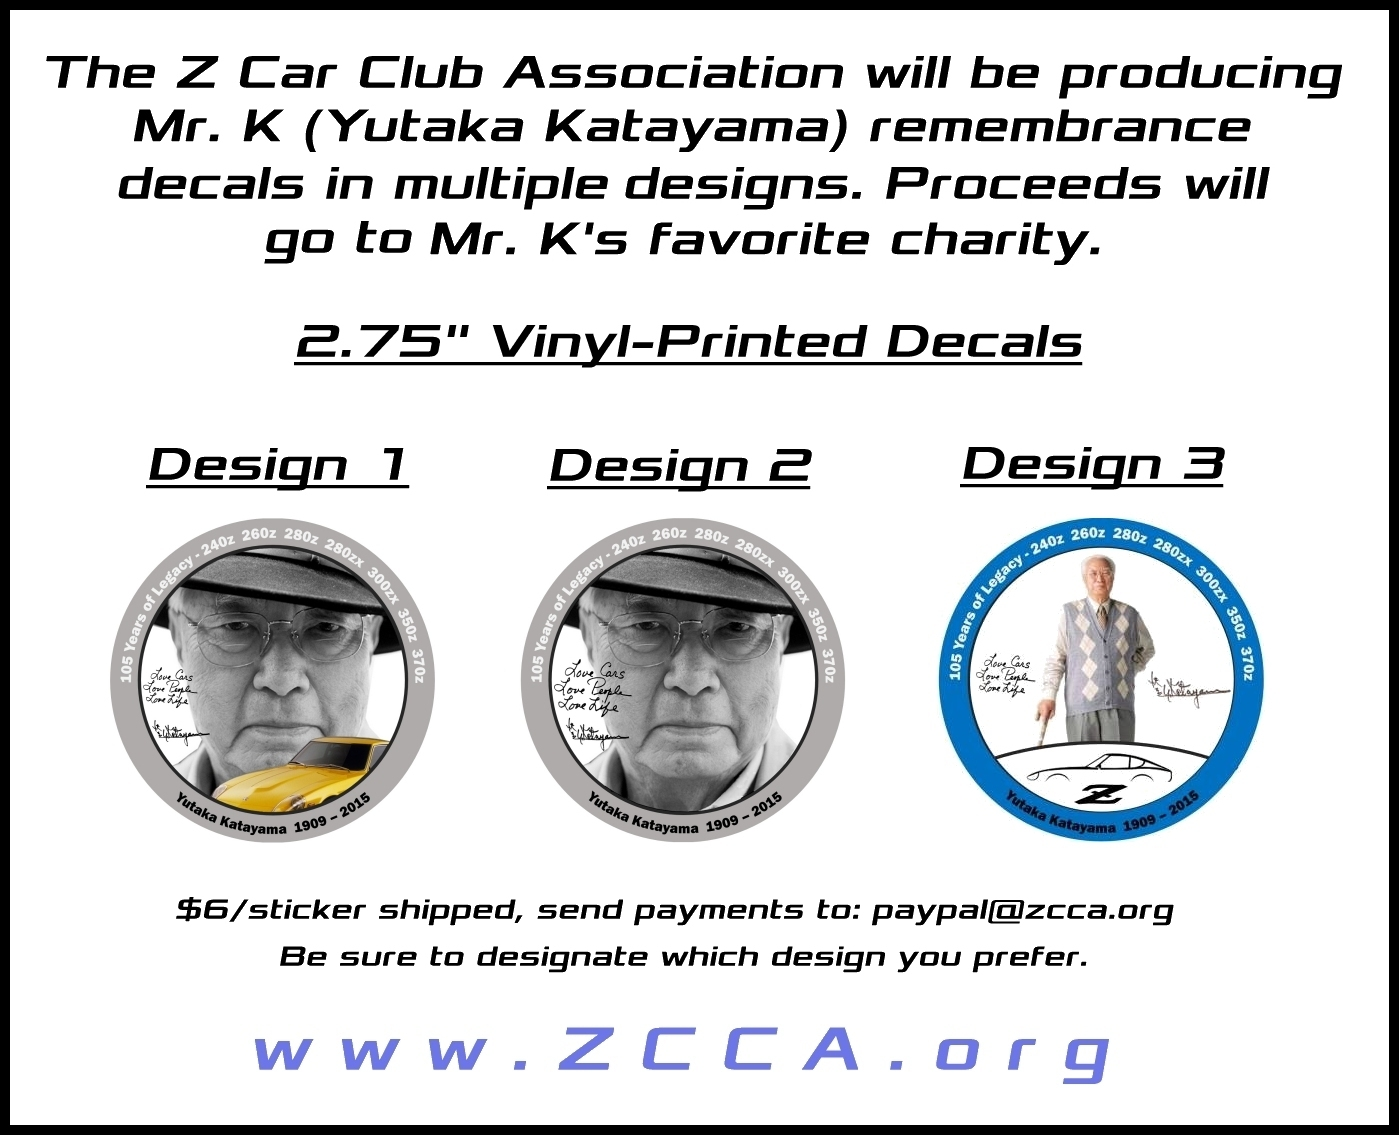 zcca_mrk_decal_advertisement